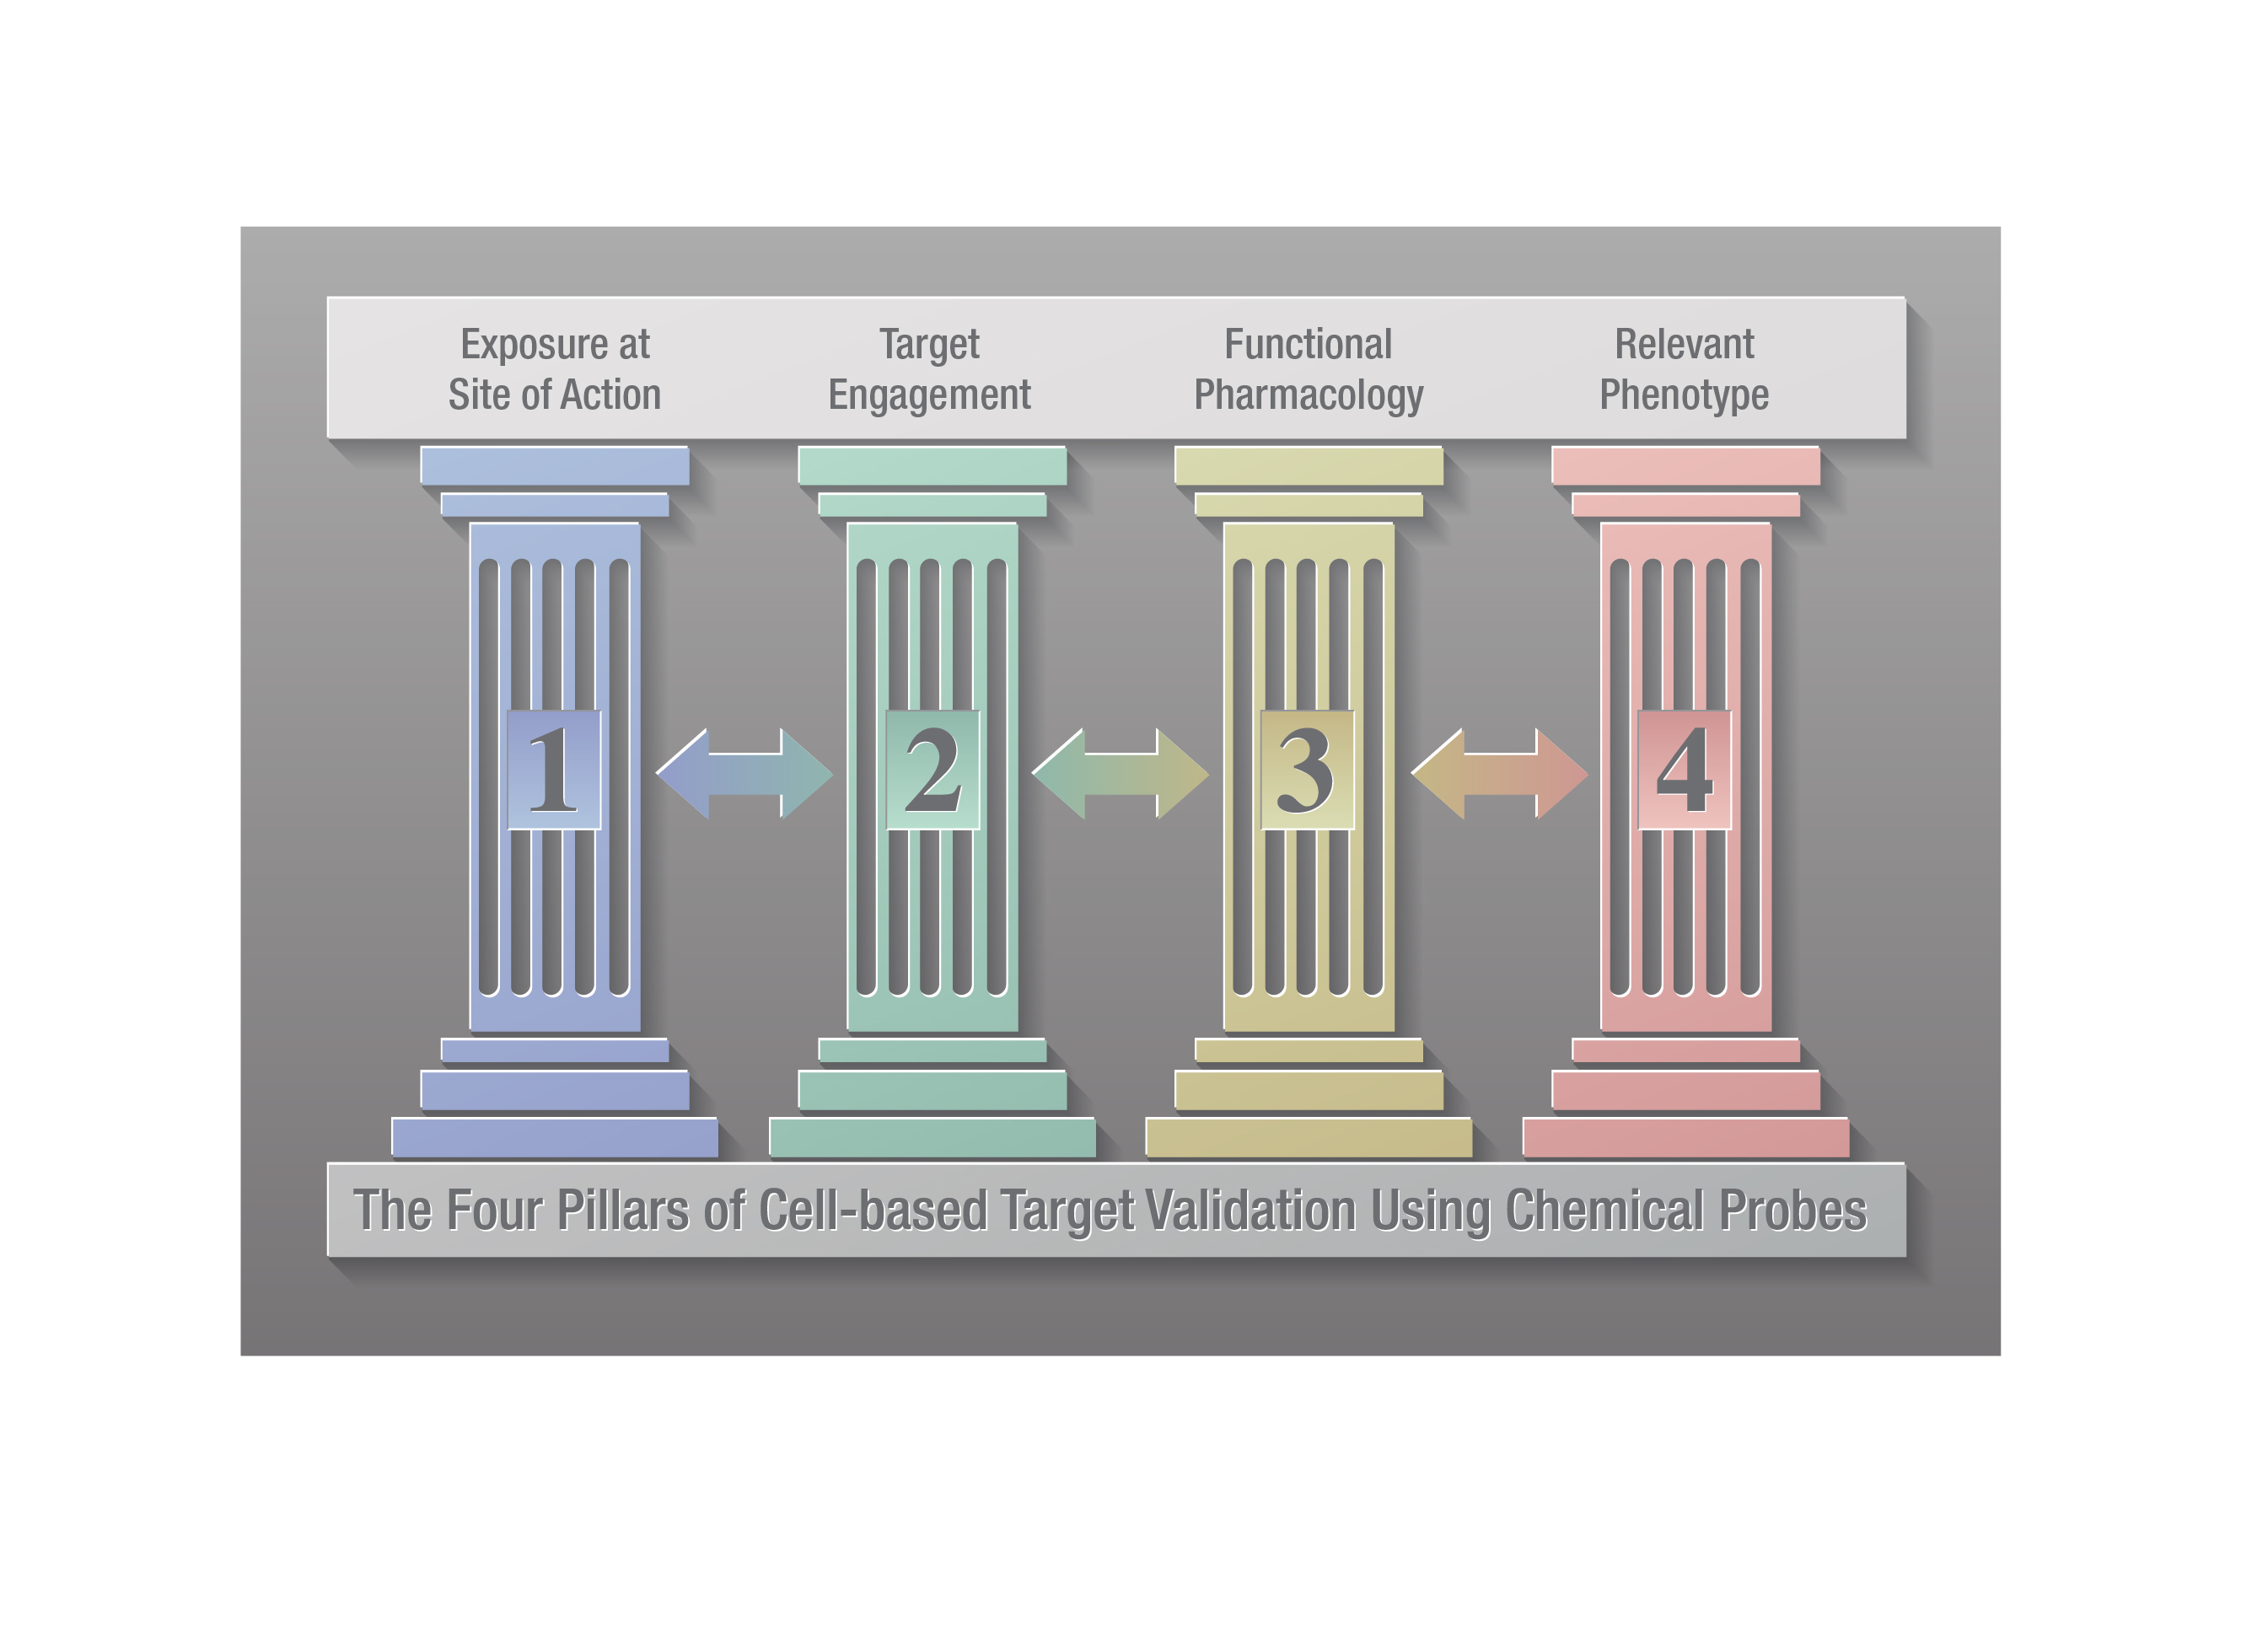 The four pillars of cell-based target validation.